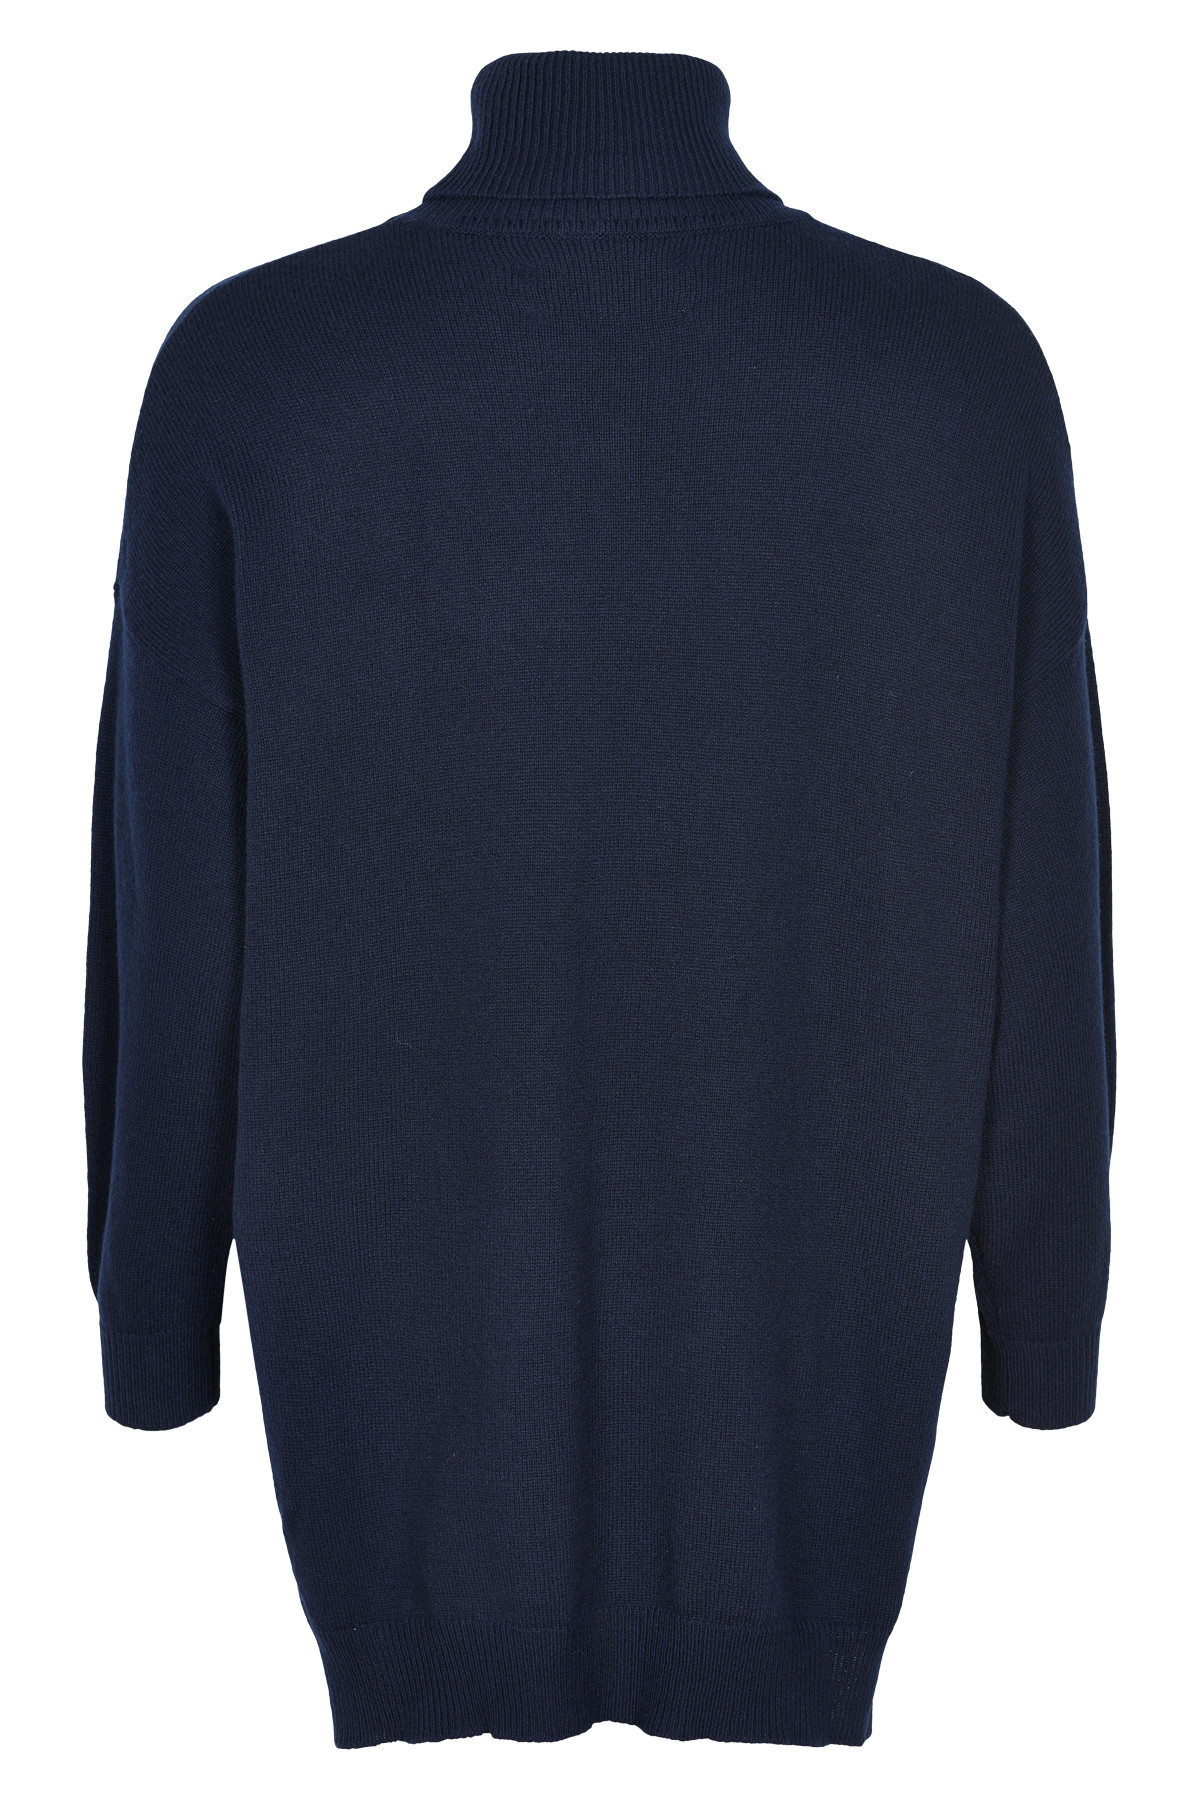 Image of   AND LESS ALLESHA PULLOVER 5519214 (Blue Nights, XS)